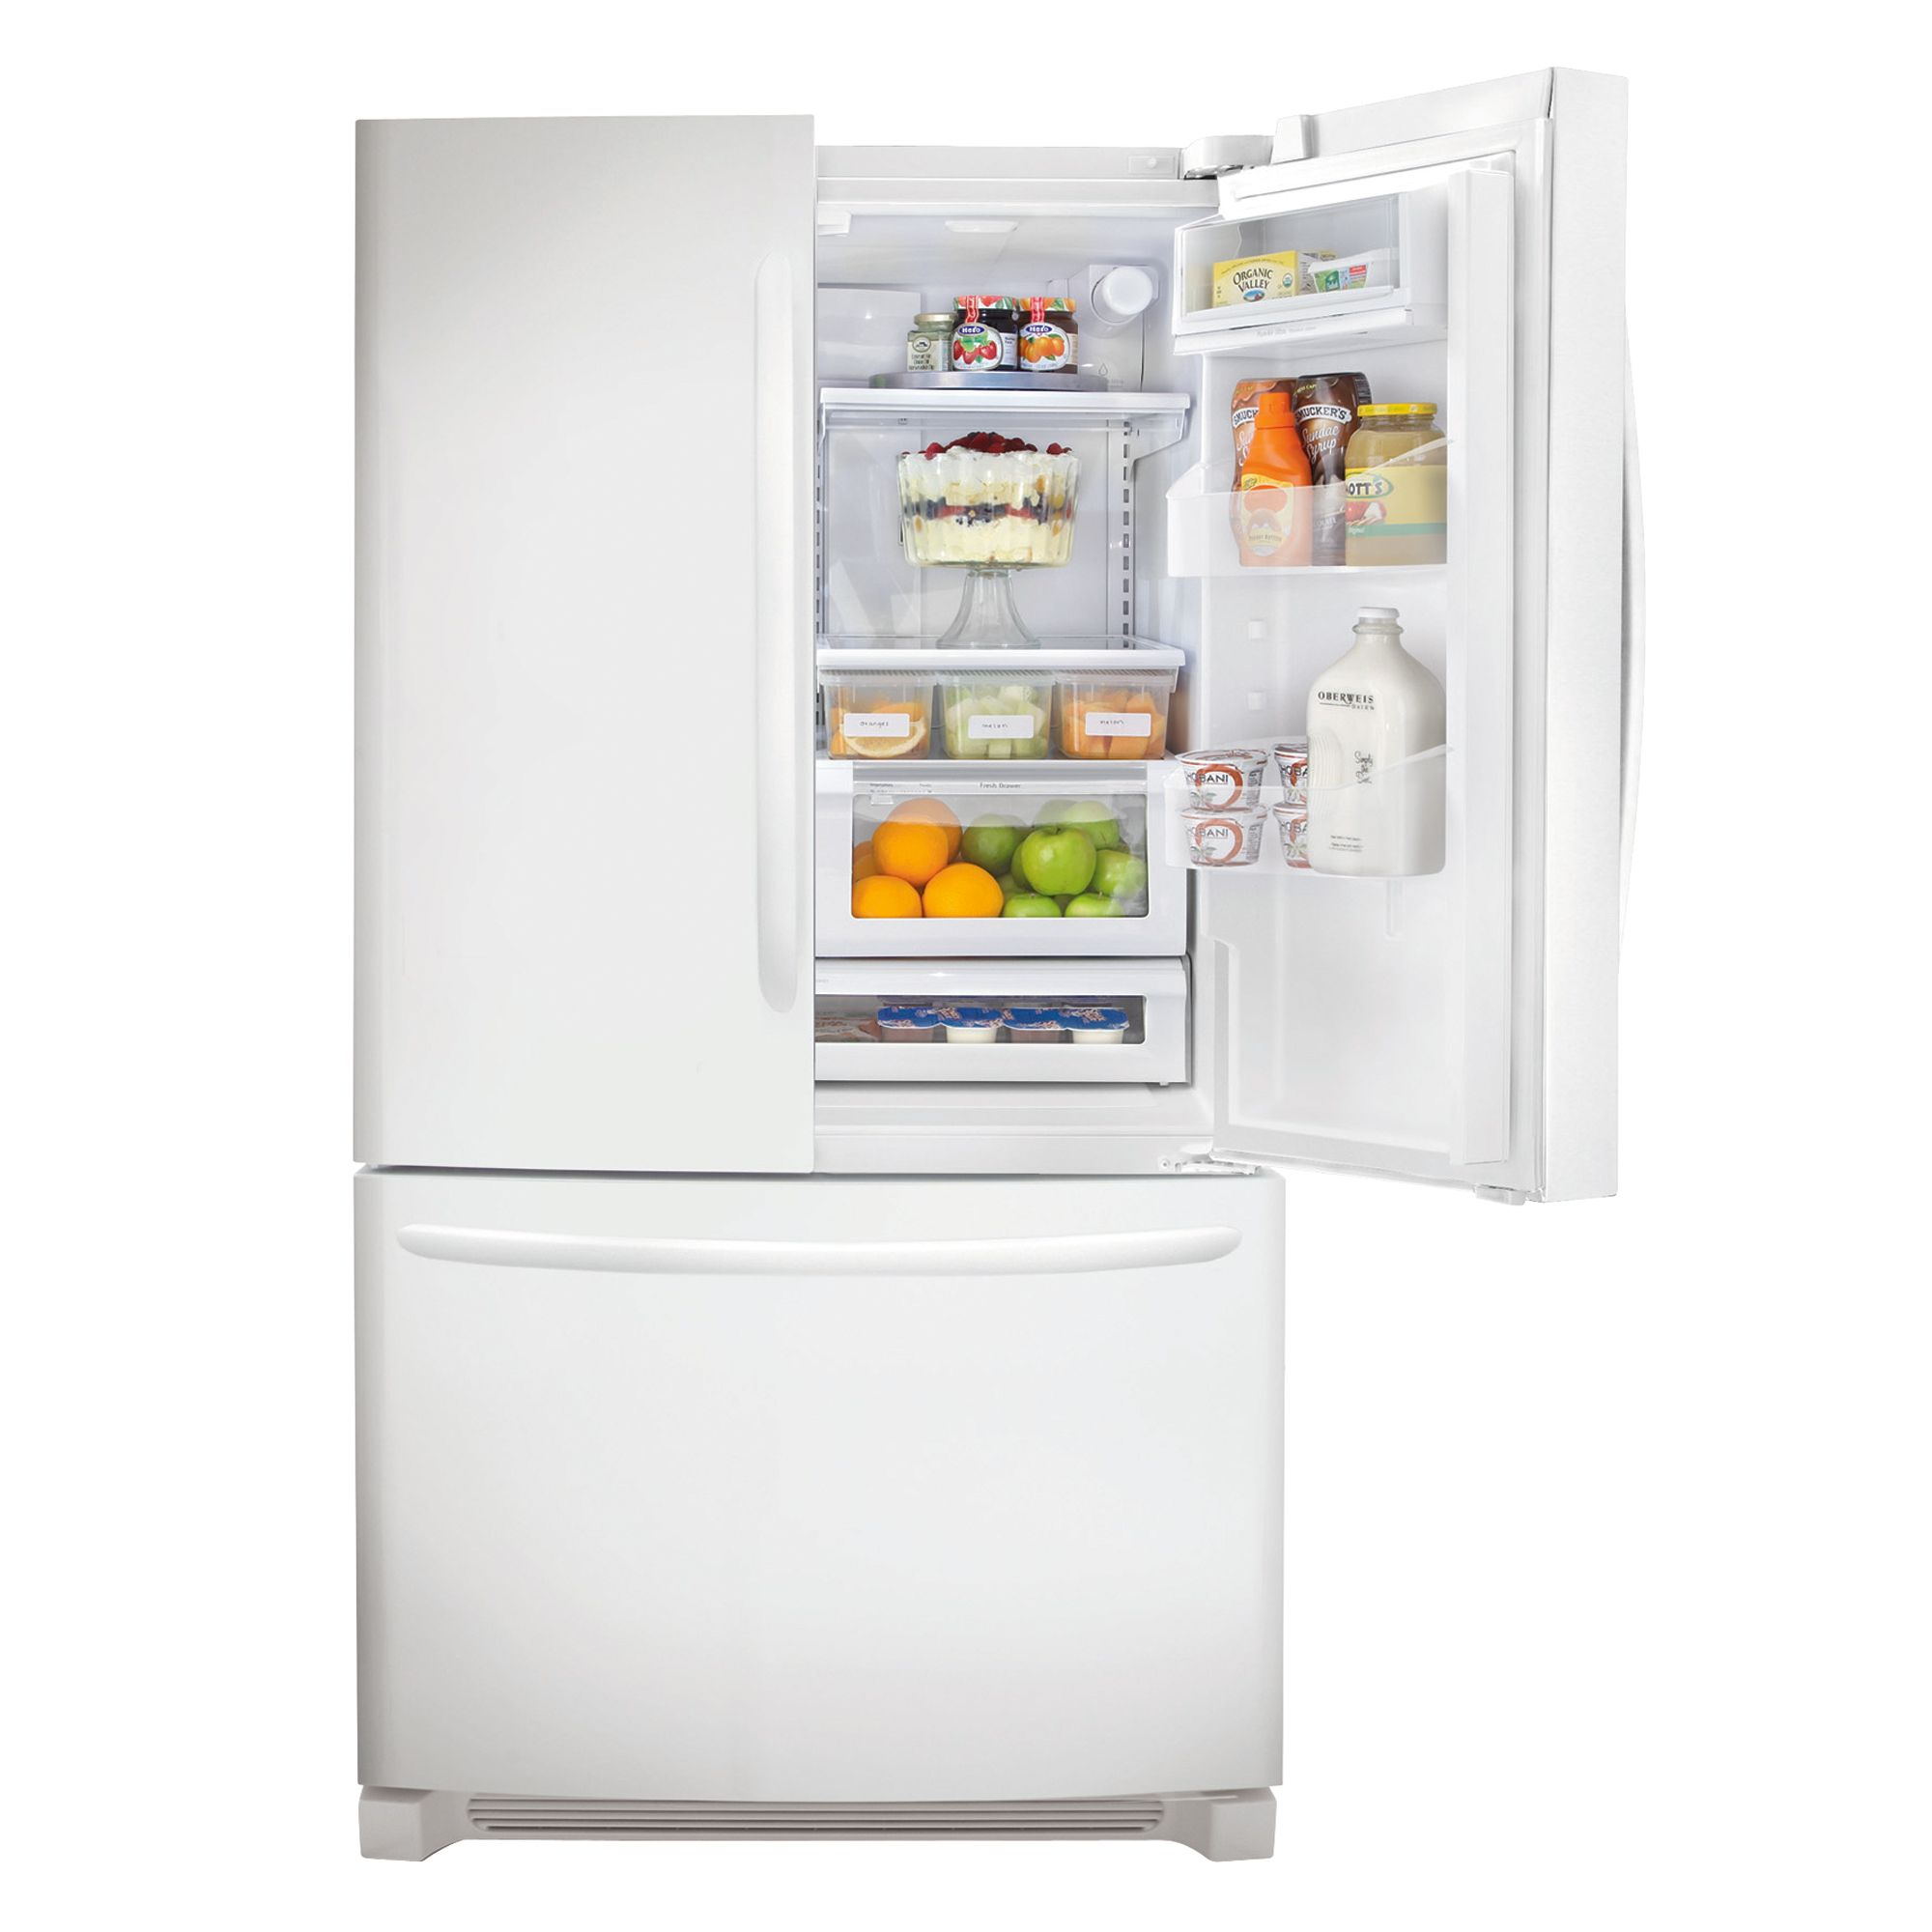 Frigidaire 25.8 cu. ft. French-Door Bottom-Freezer Refrigerator (FGUN2642L)